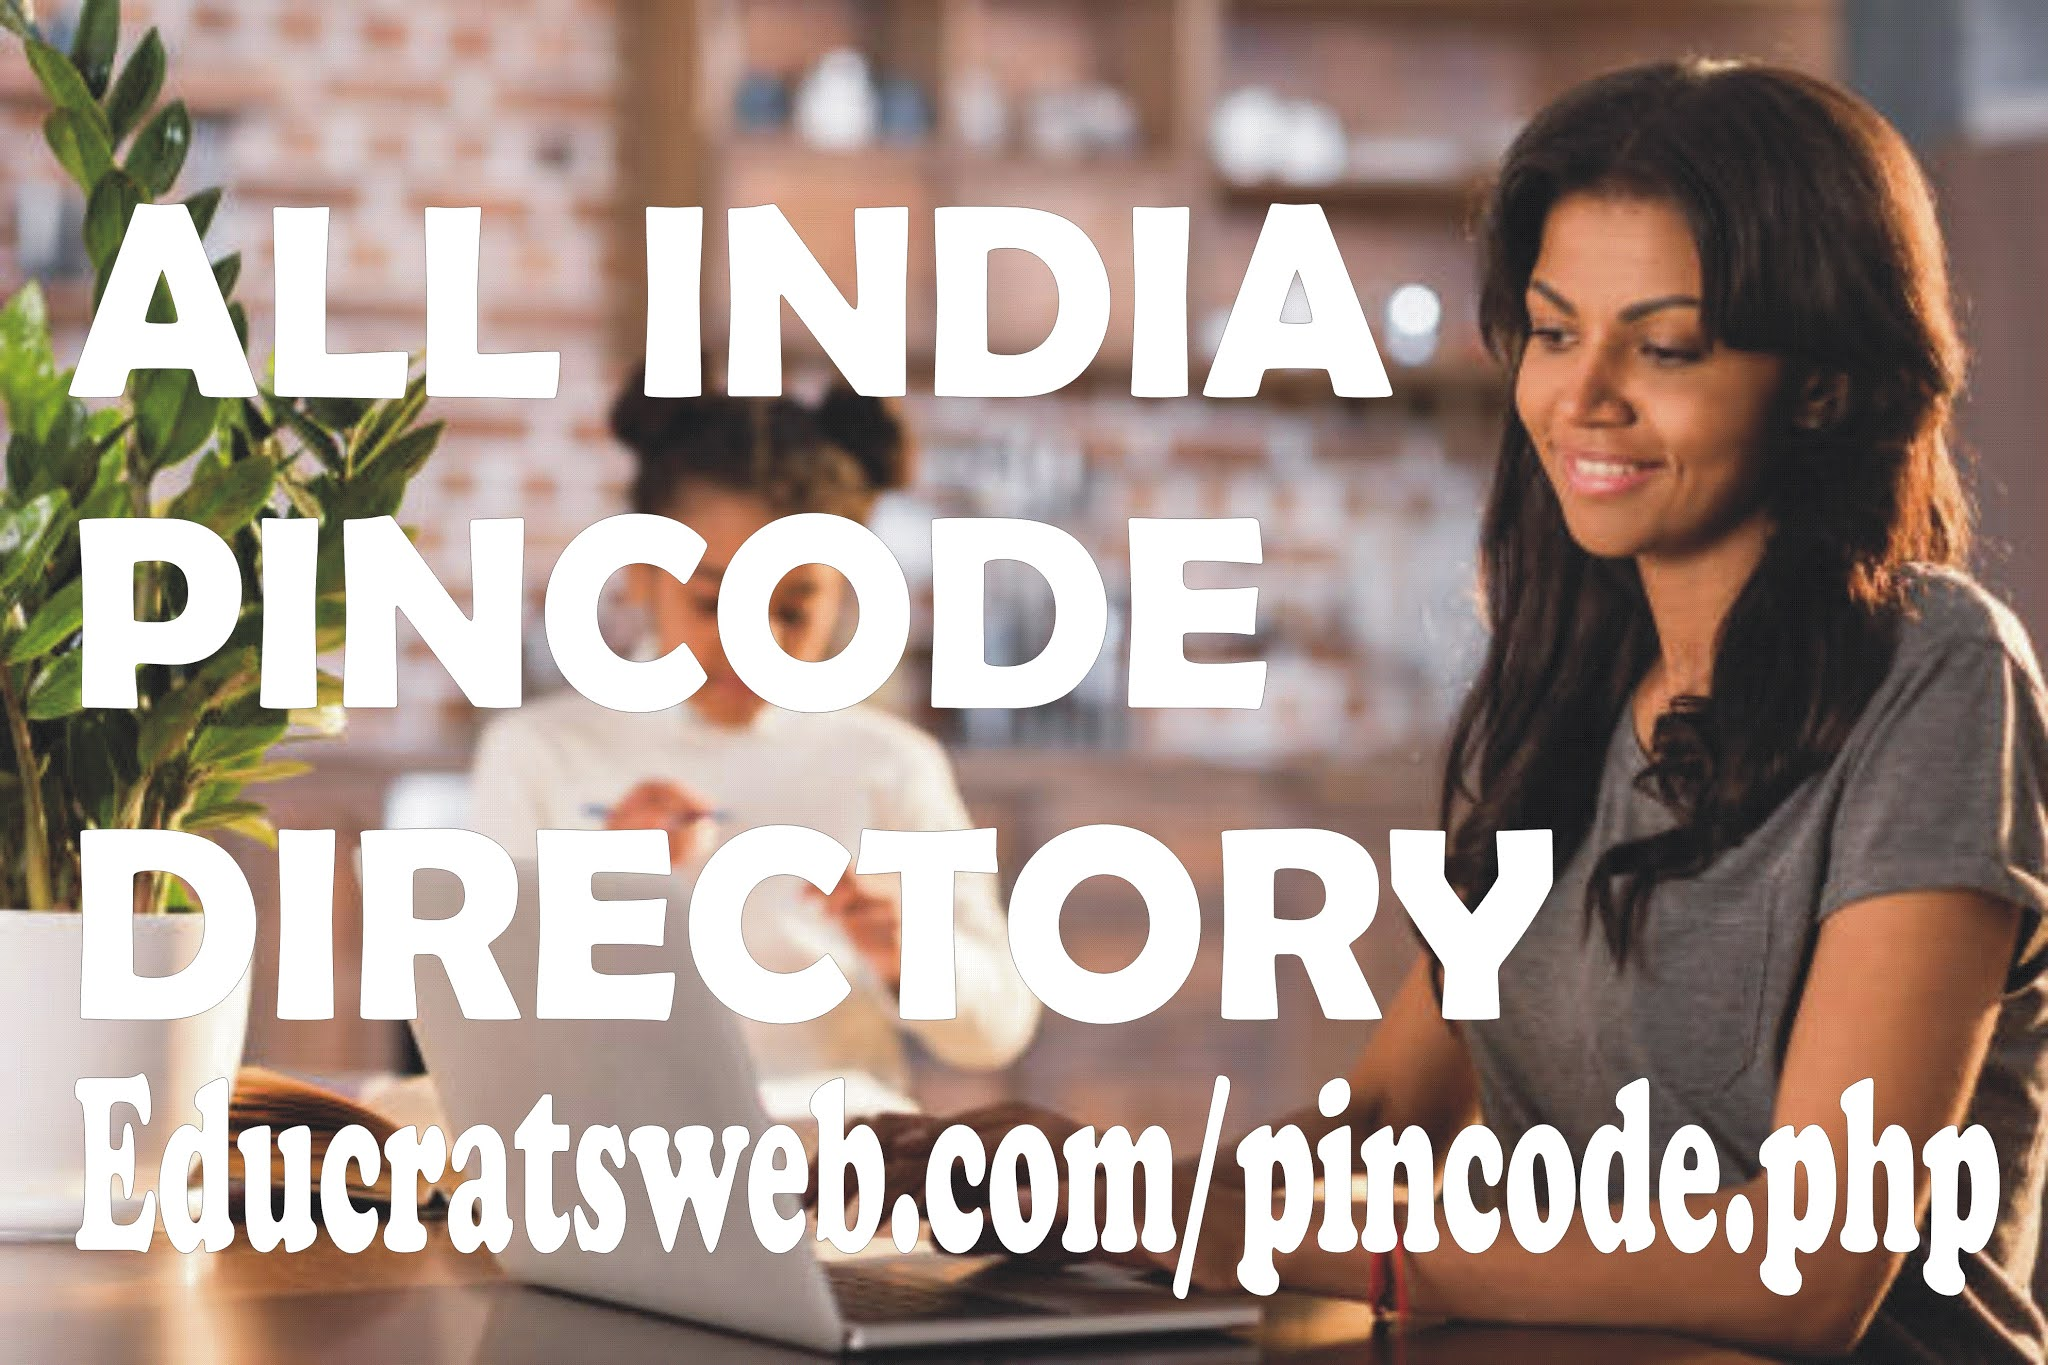 PINCODE OF CHATTISGARH -  -   PINCODE SEARCH, POST OFFICE DETAILS, ALL INDIA POST OFFICE DATA    #EDUCRATSWEB